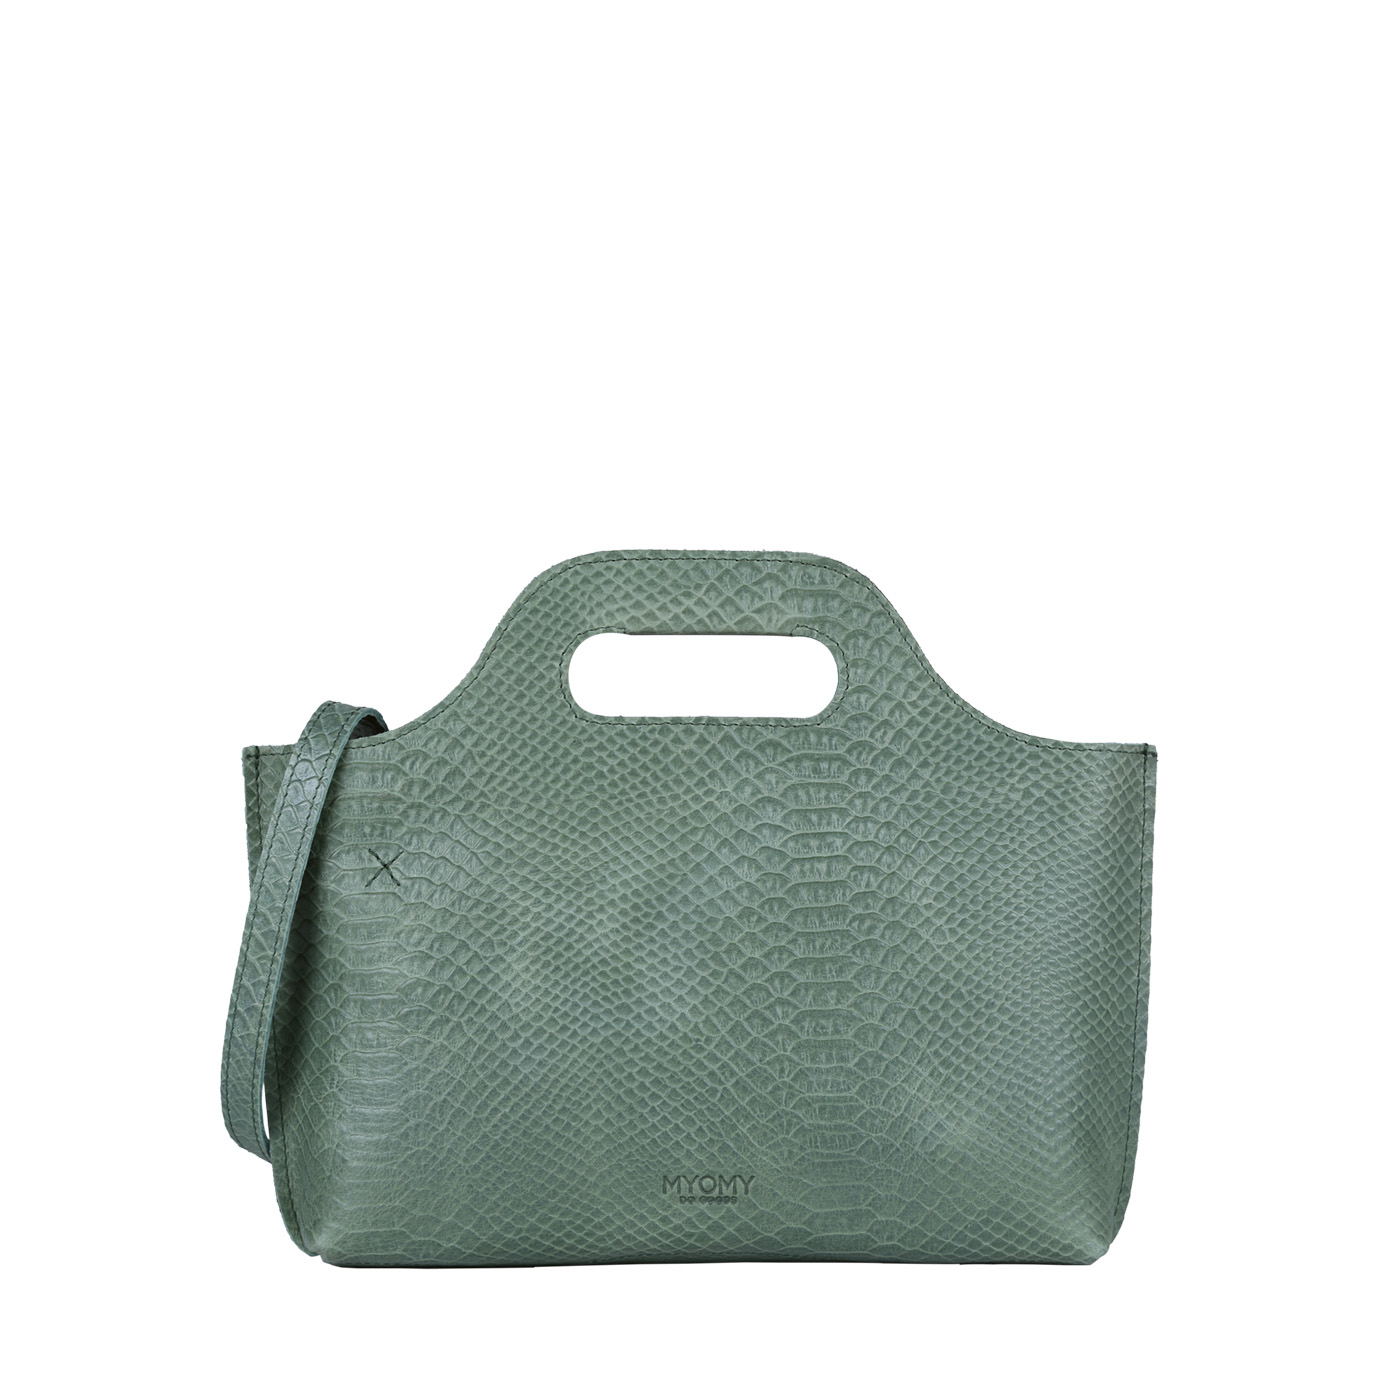 MY CARRY BAG Mini – anaconda sea green